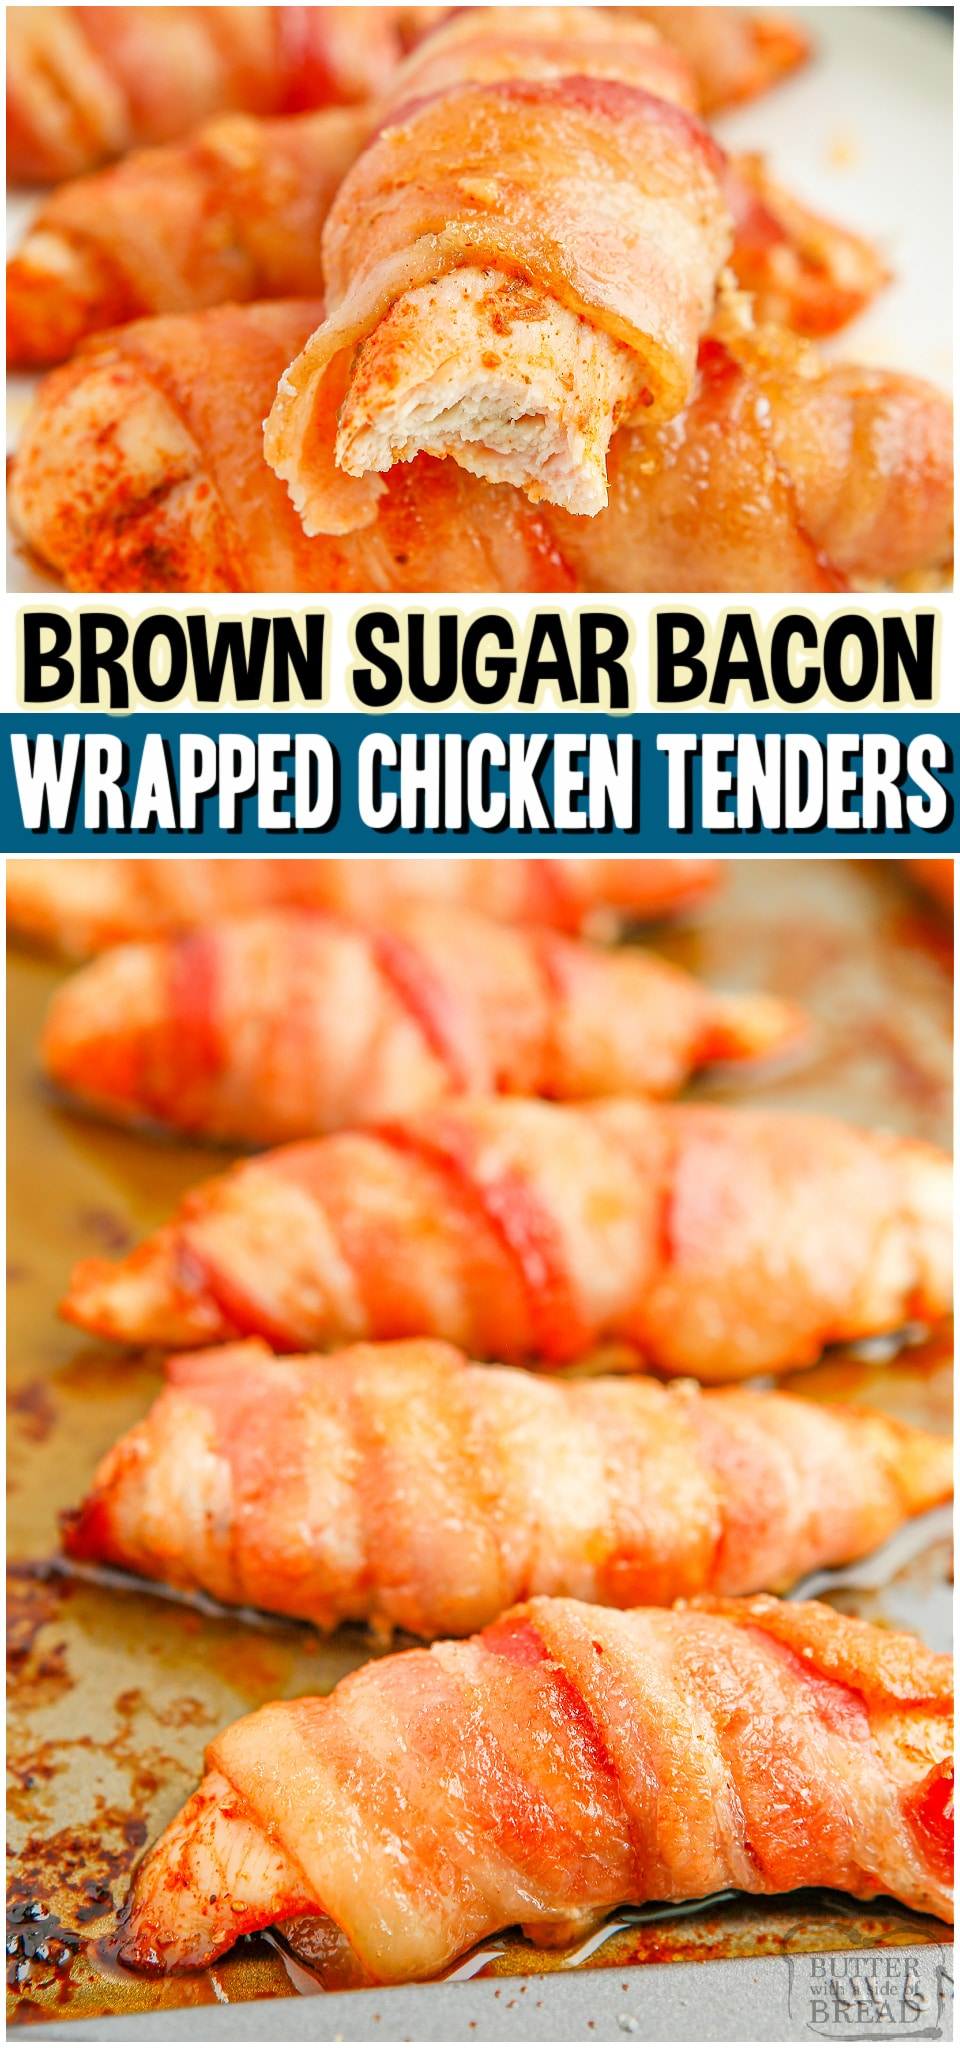 Bacon Wrapped Chicken Tenders made with simple, flavorful ingredients for a tasty appetizer or easy dinner! Easy chicken recipe made with bacon & brown sugar, which is always a winning combination! #bacon #chicken #brownsugar #appetizer #easyrecipe from BUTTER WITH A SIDE OF BREAD